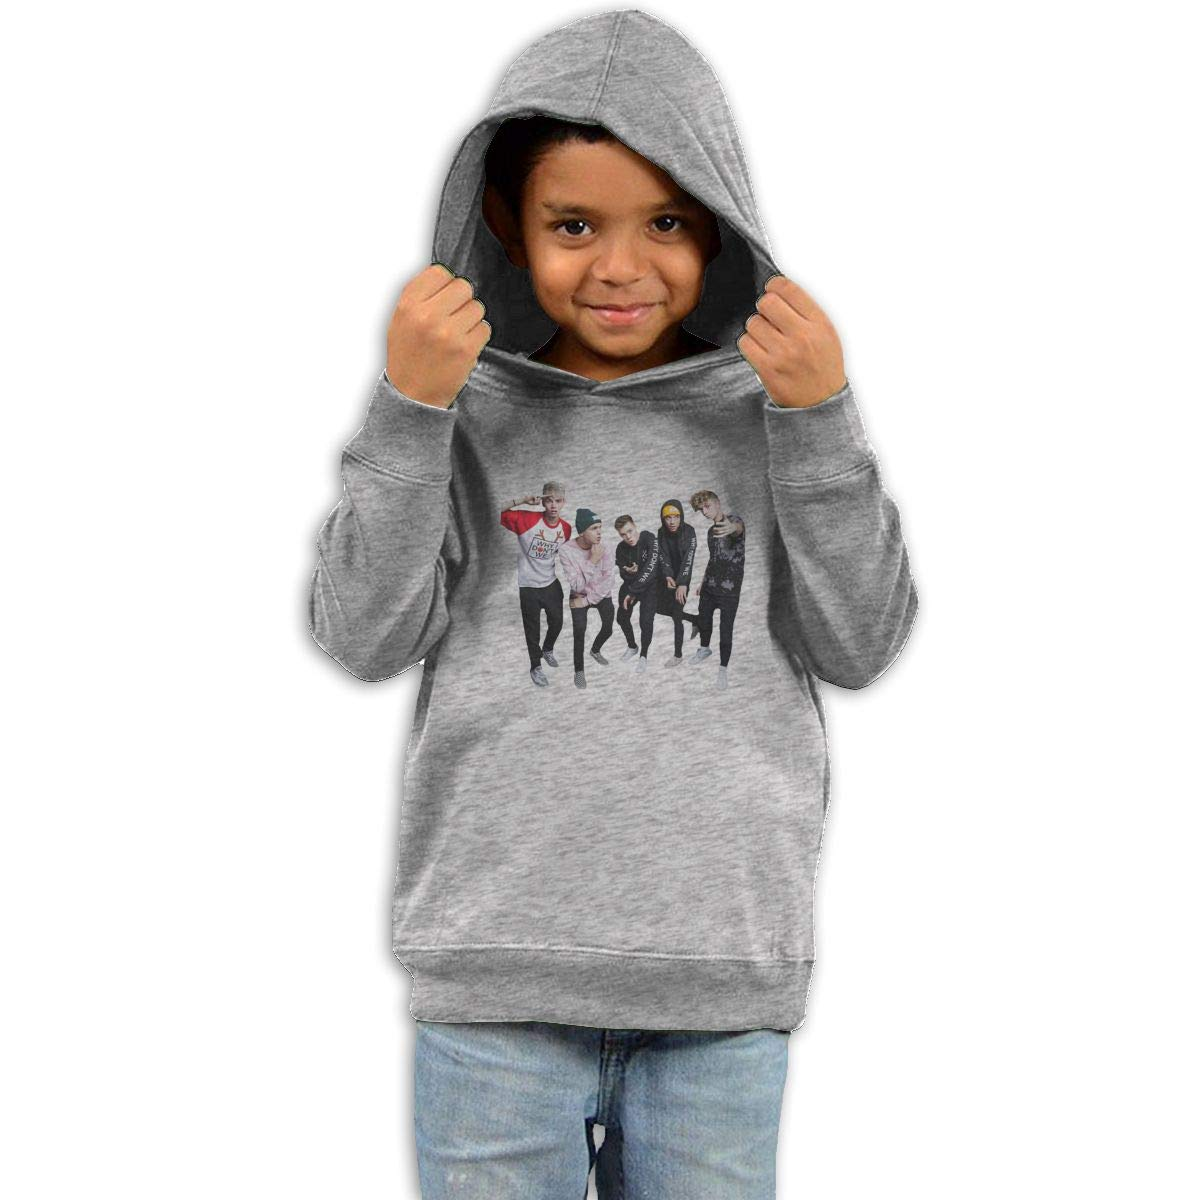 Stacy J. Payne Boys Why Dont We Lovely Sweater39 Gray